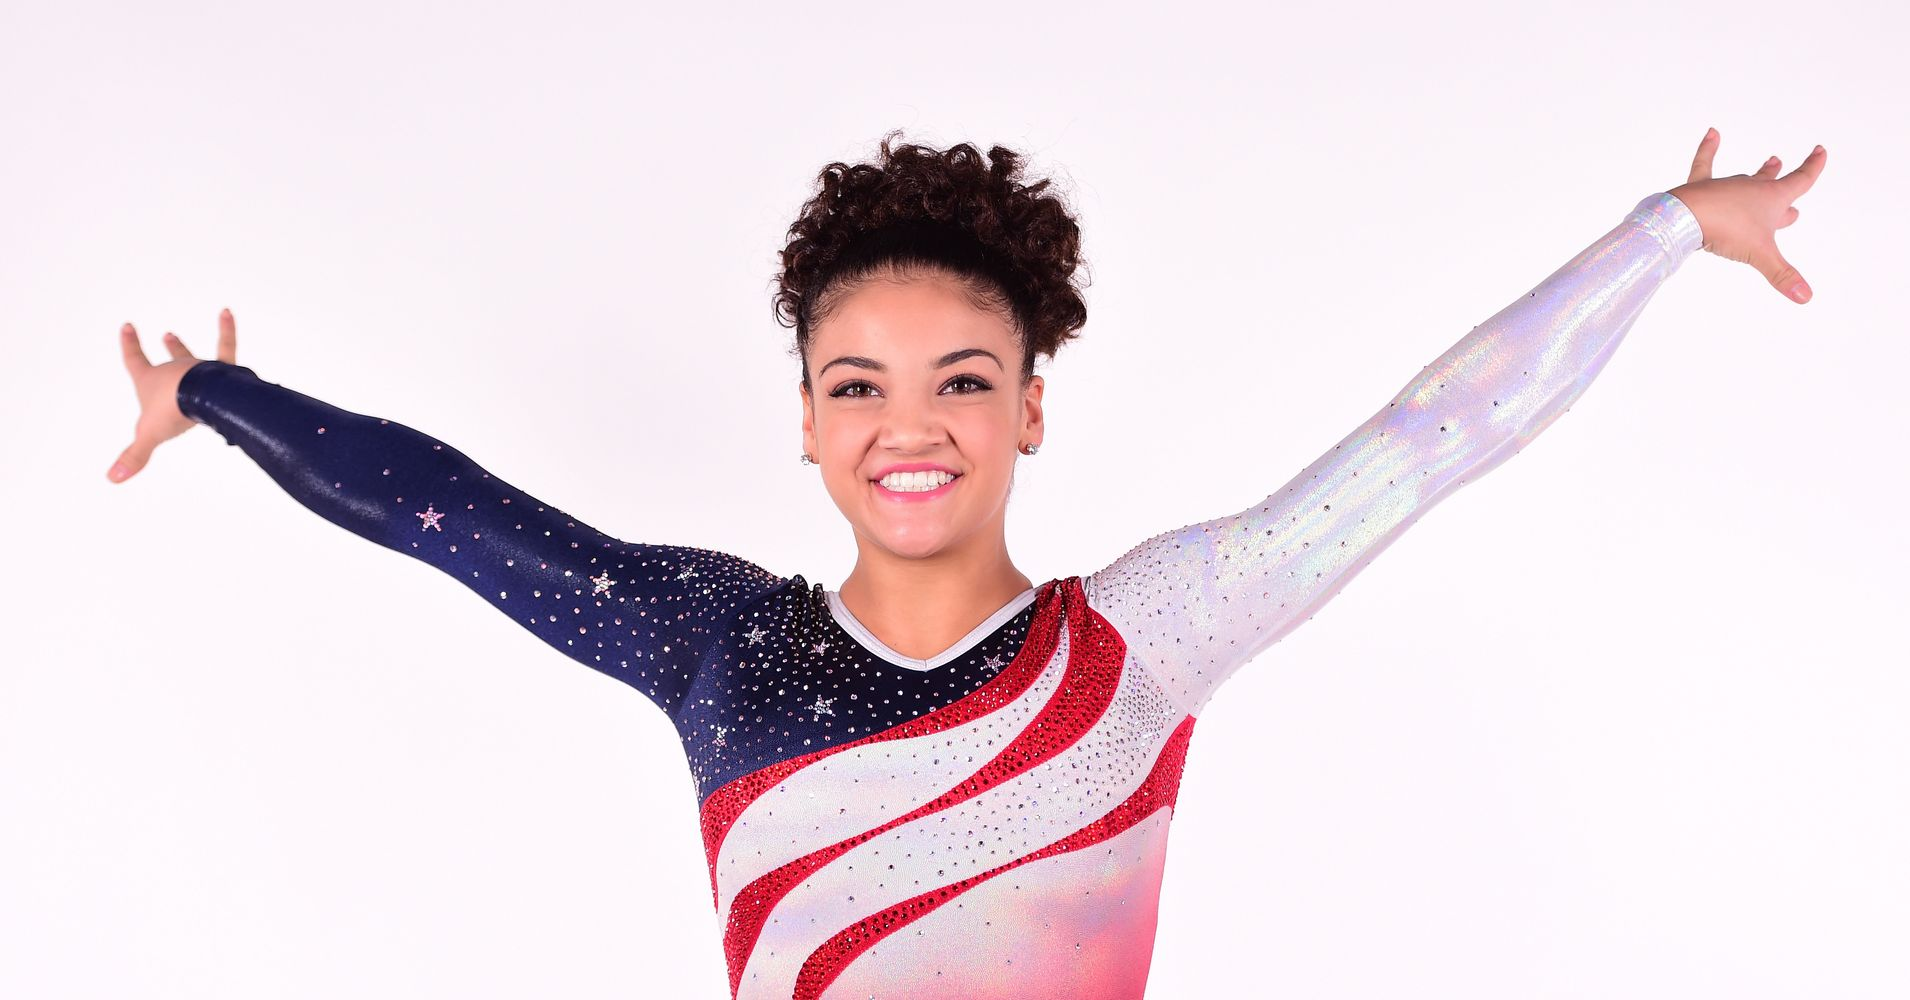 Here S The Dazzling Beam Routine That Got Laurie Hernandez